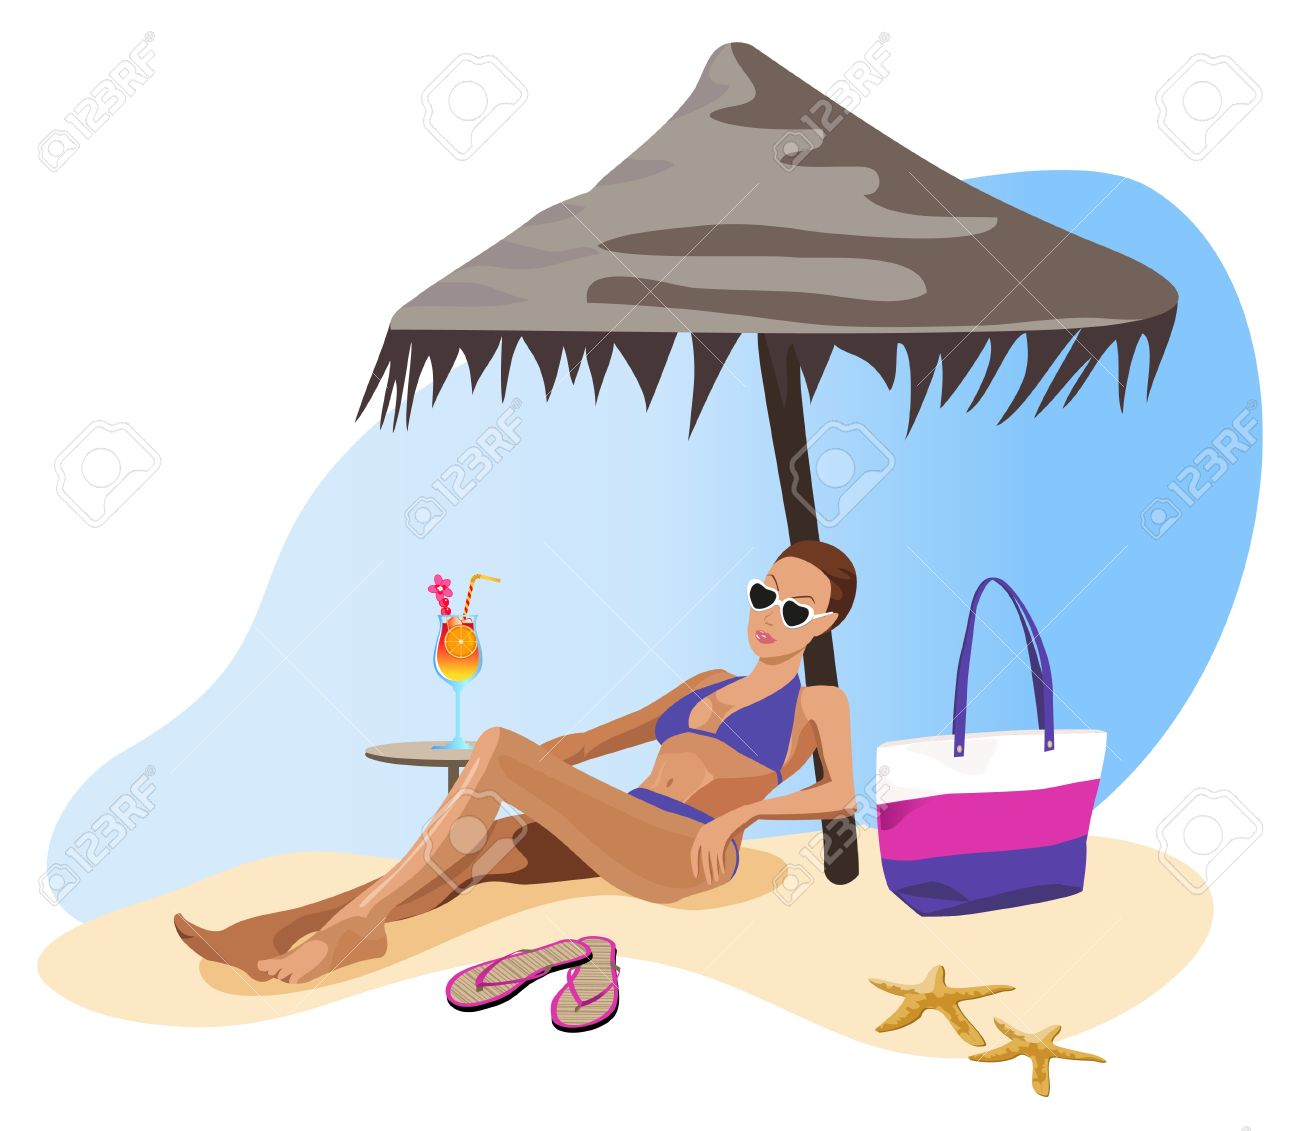 Woman tanning clipart svg library stock Sunbathing Clipart | Free download best Sunbathing Clipart ... svg library stock